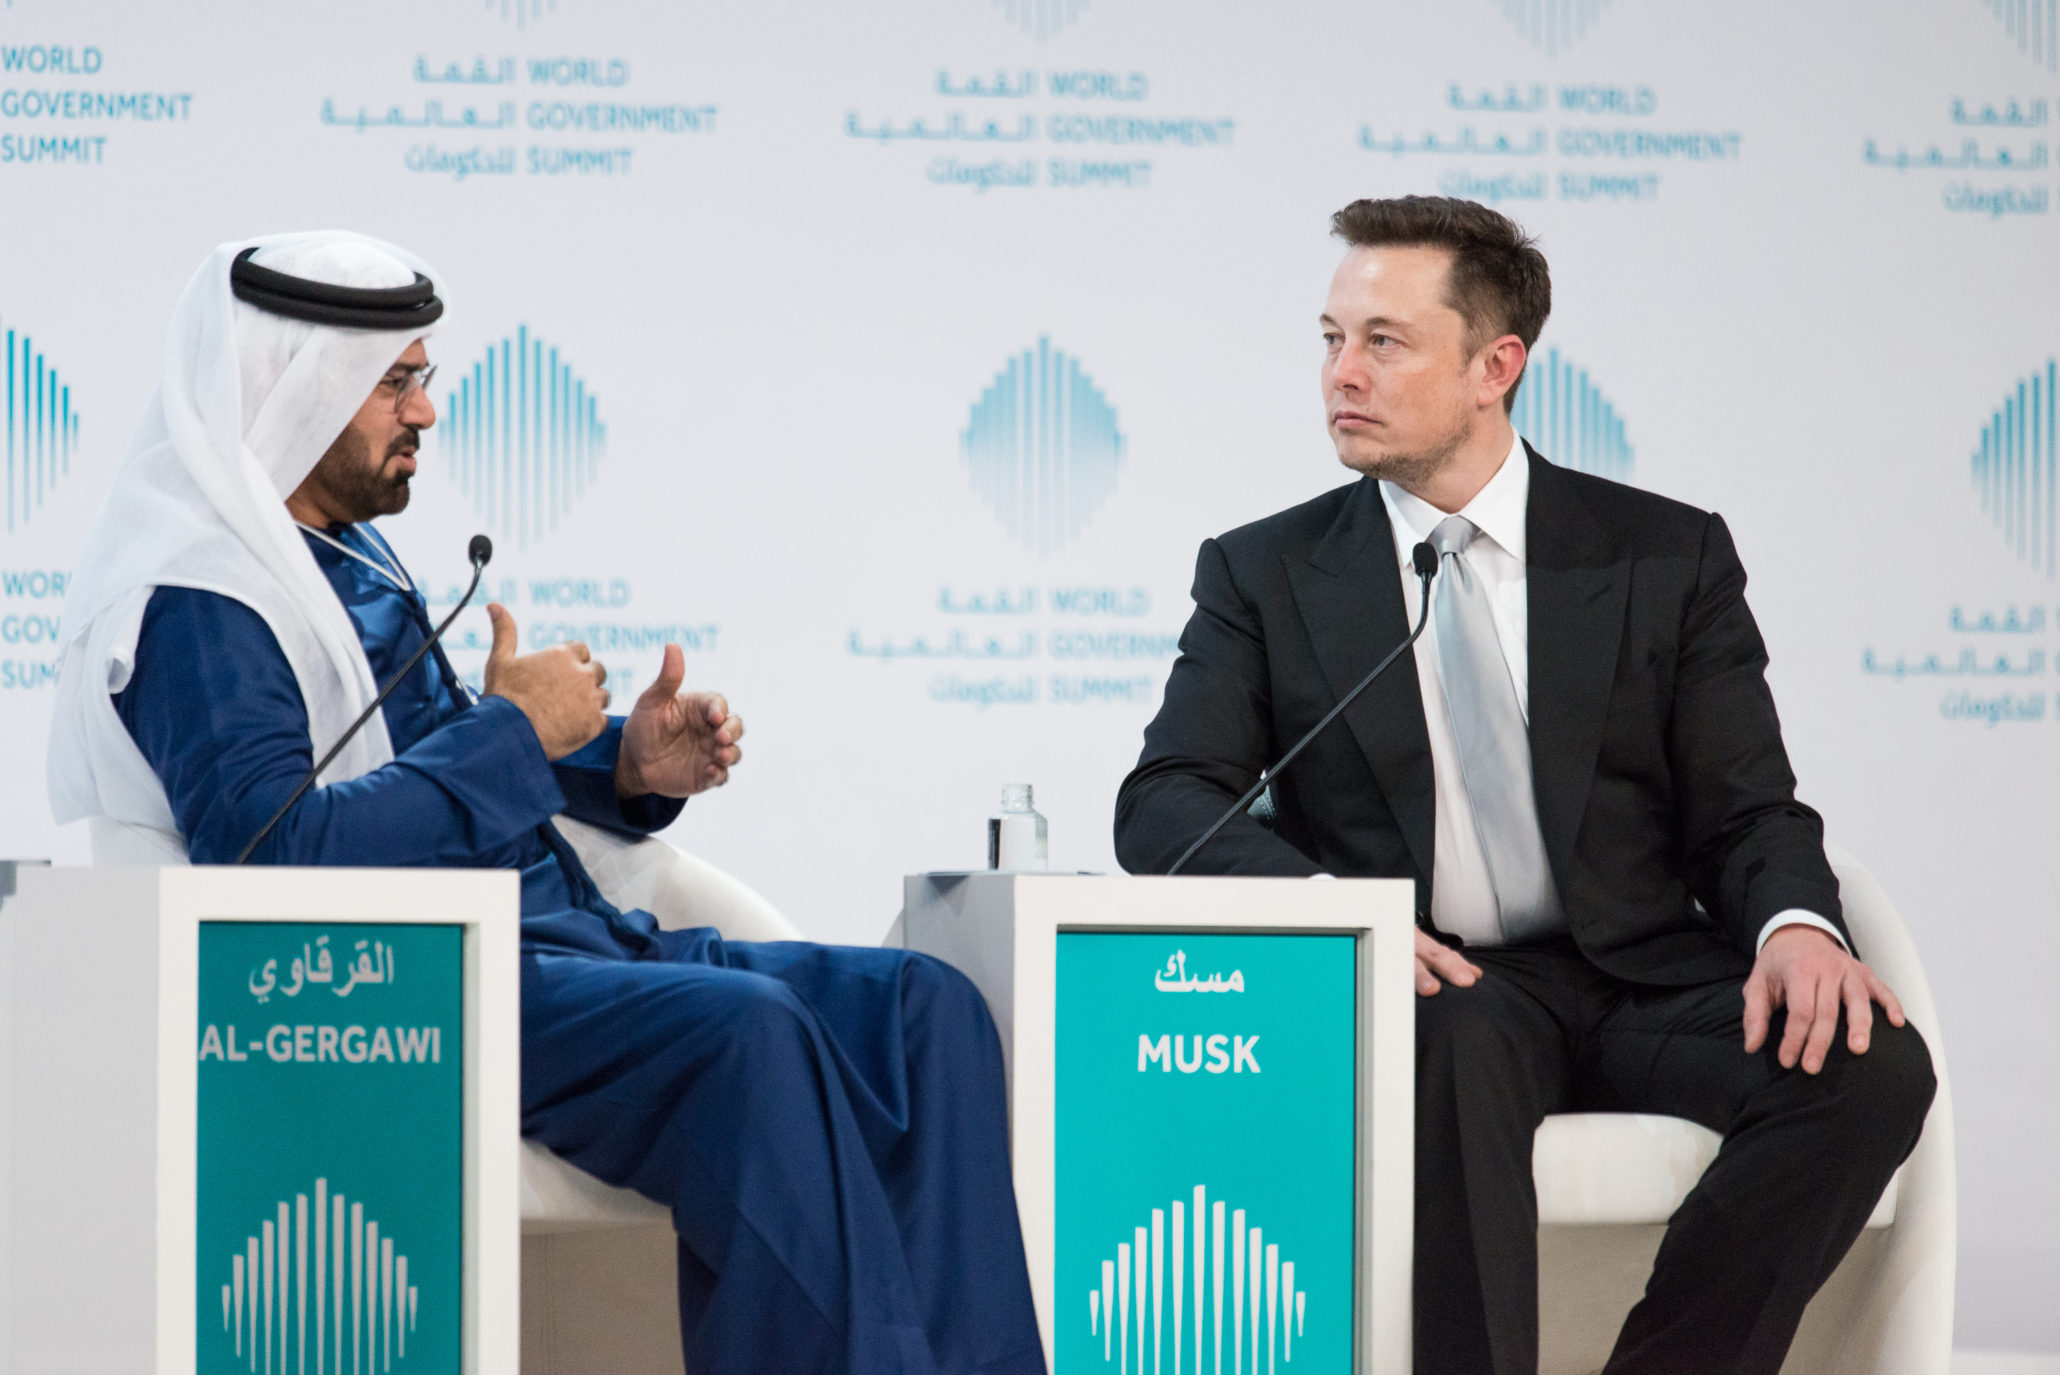 musk making tesla private company